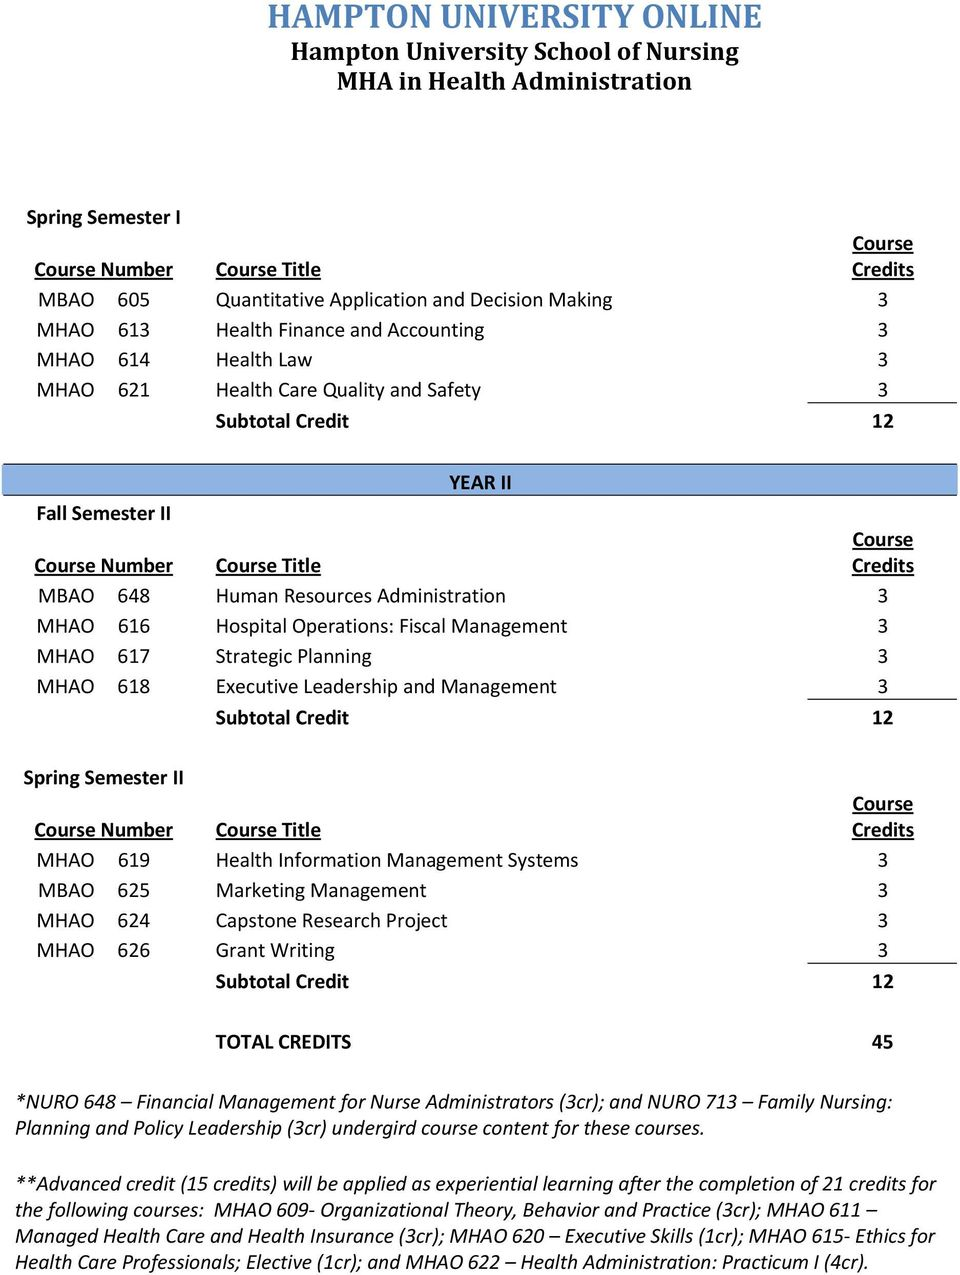 Spring Semester II Number Title MHAO 619 Health Information Management Systems 3 MBAO 625 Marketing Management 3 MHAO 624 Capstone Research Project 3 MHAO 626 Grant Writing 3 TOTAL CREDITS 45 *NURO